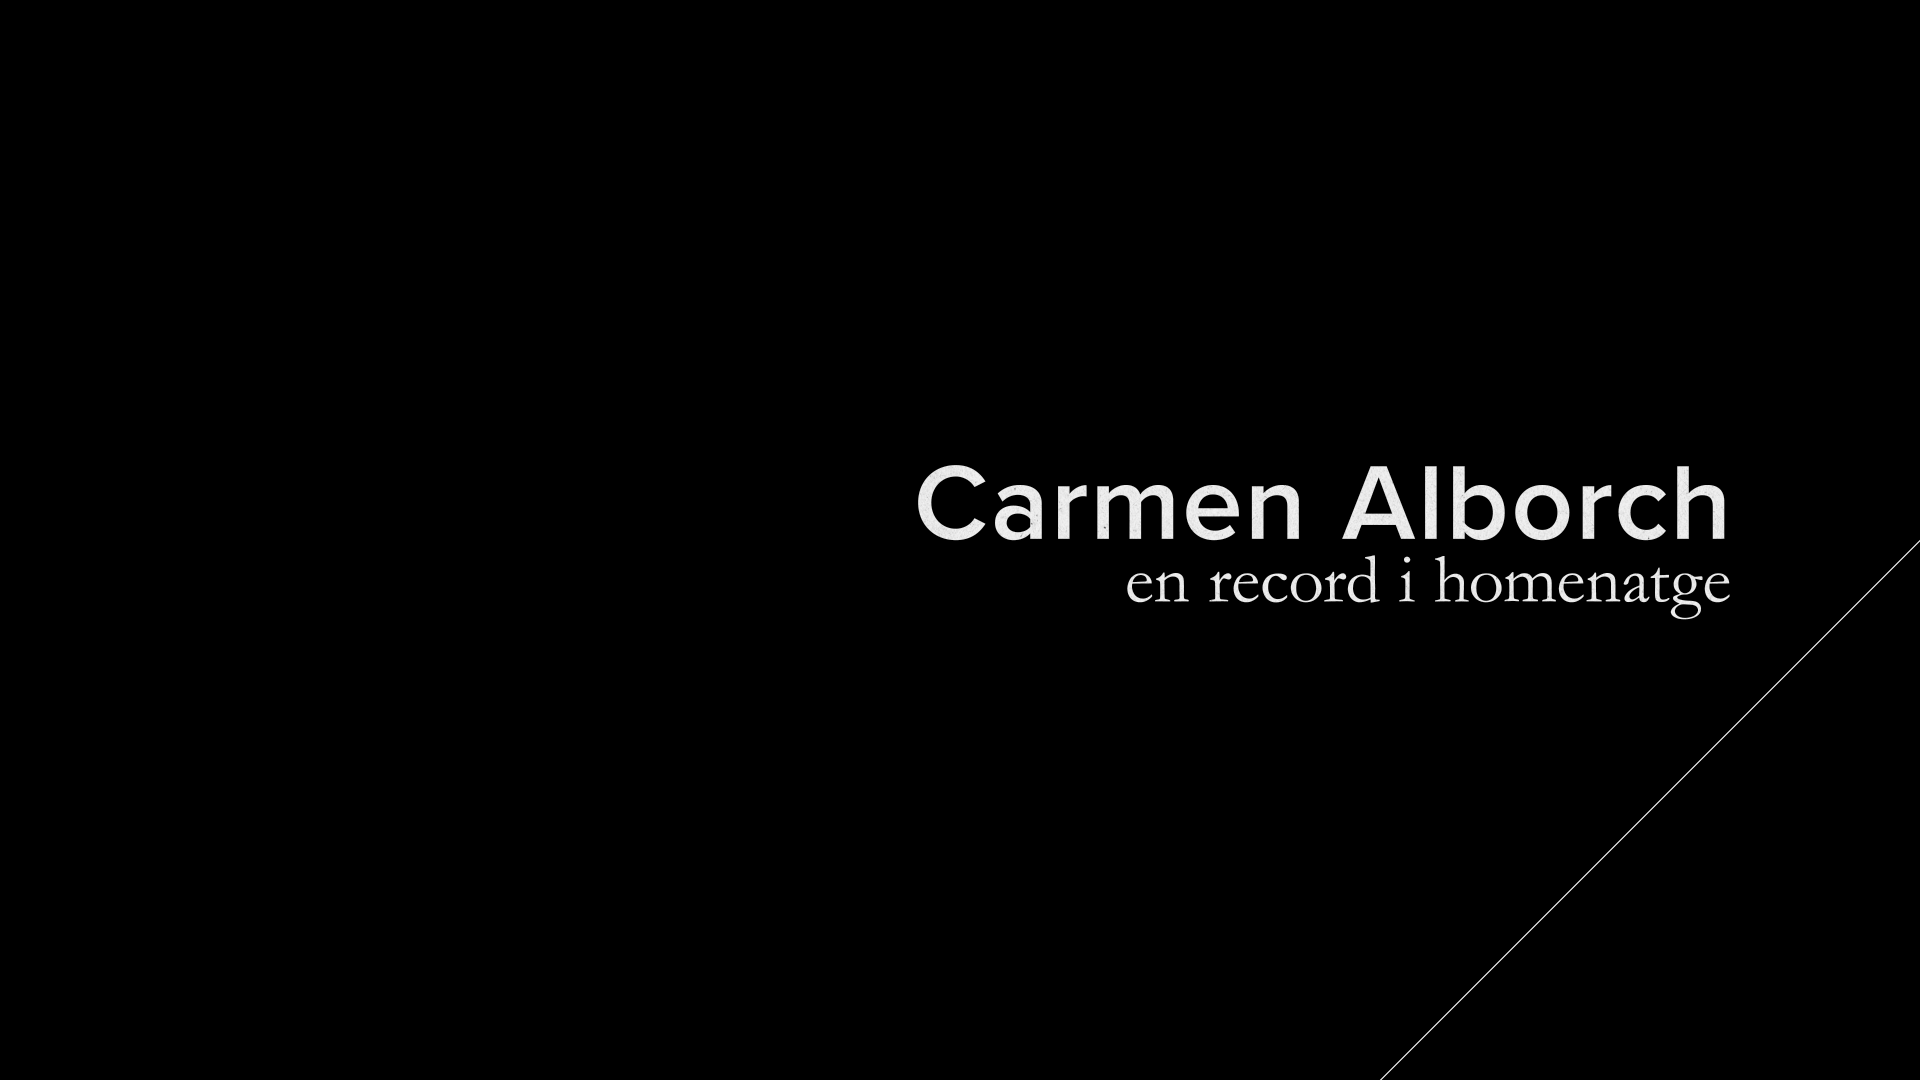 Carmen Alborch, en record i homentatge